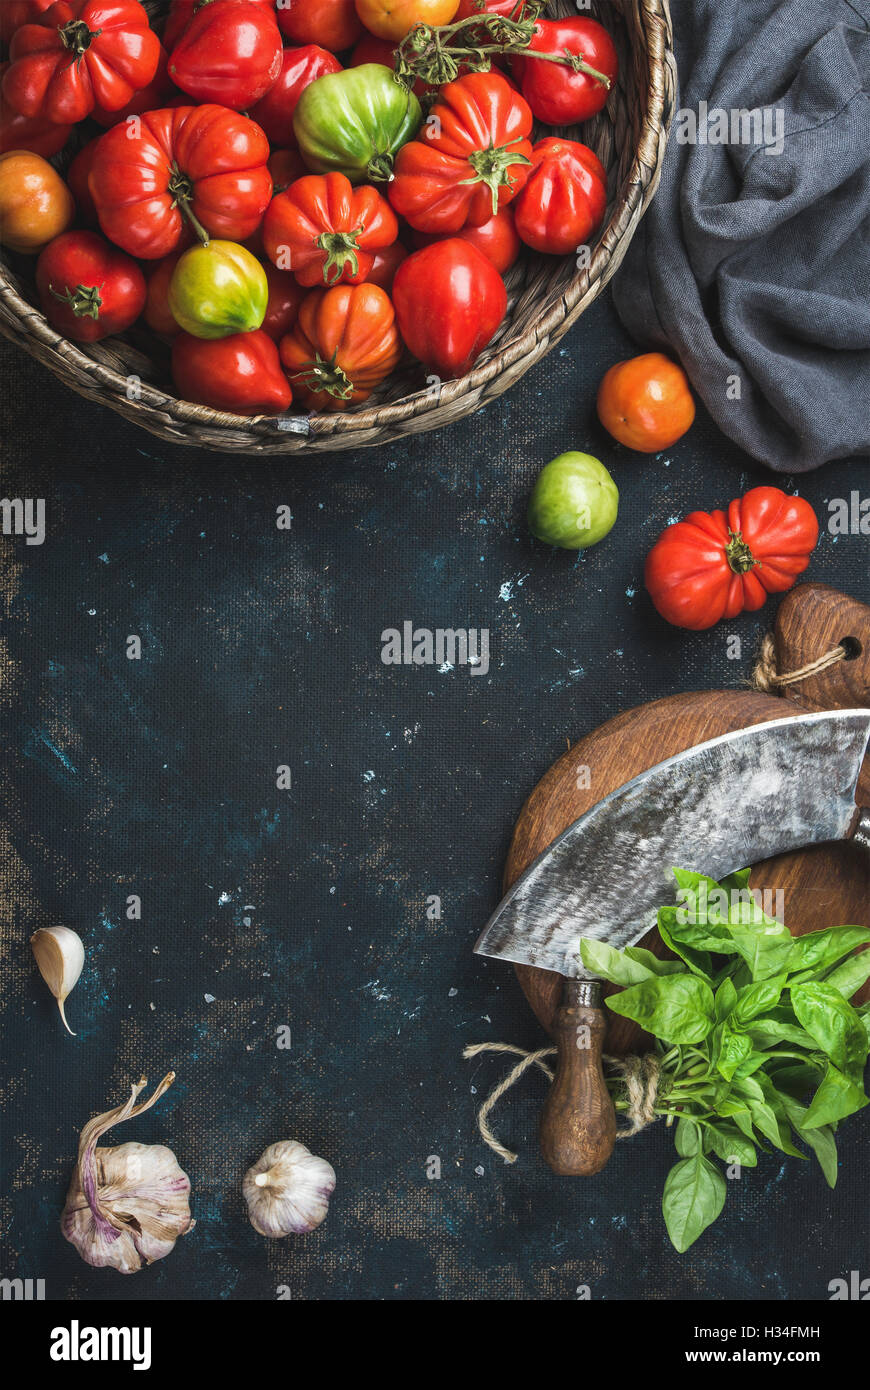 Fresh colorful ripe heirloom tomatoes in basket, copy space - Stock Image